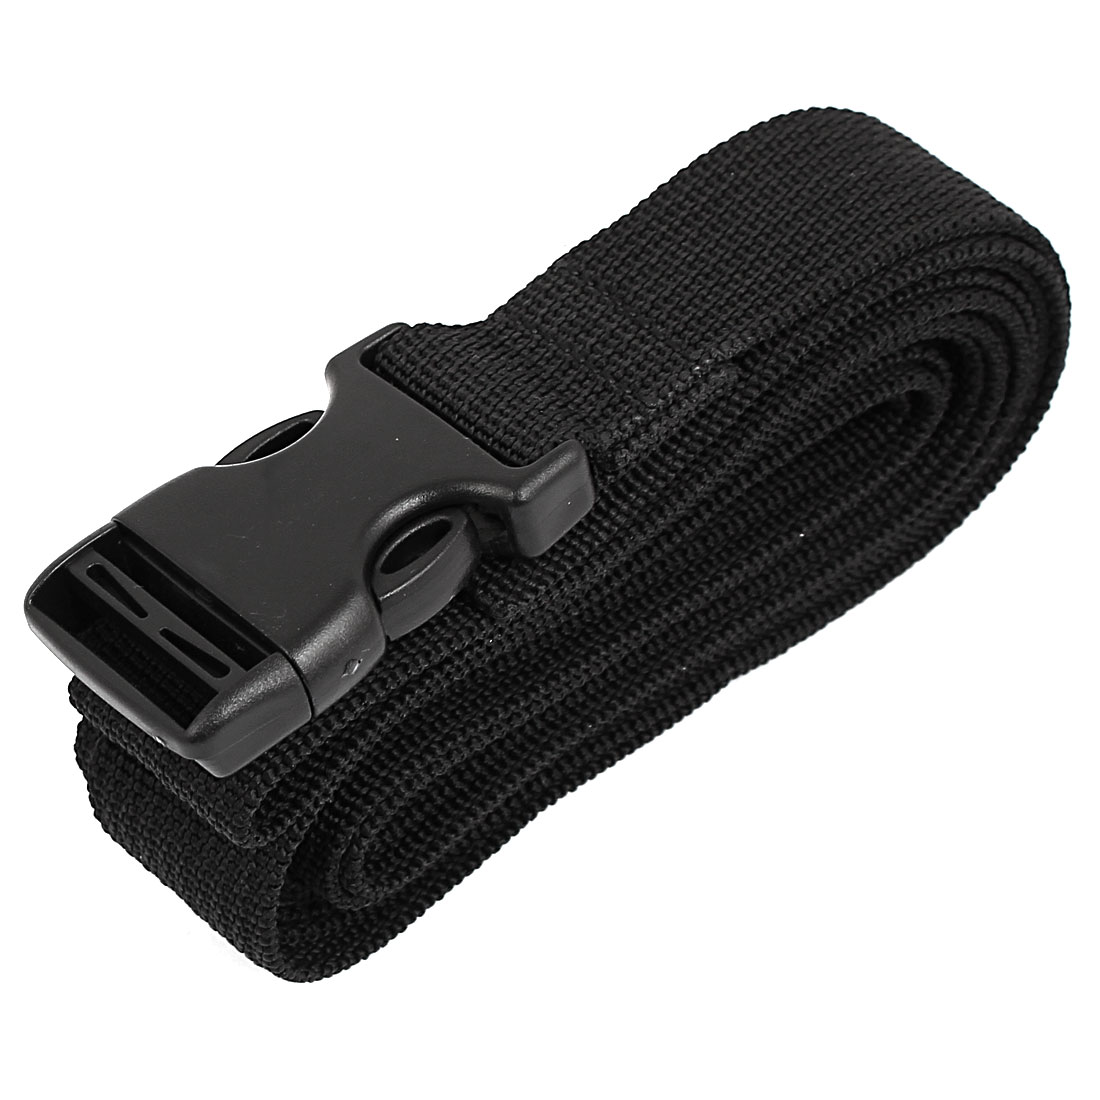 Side Release Buckle Luggage Suitcase Backpack Baggage Adjustable Belt Strap Black 2.5M x 25mm